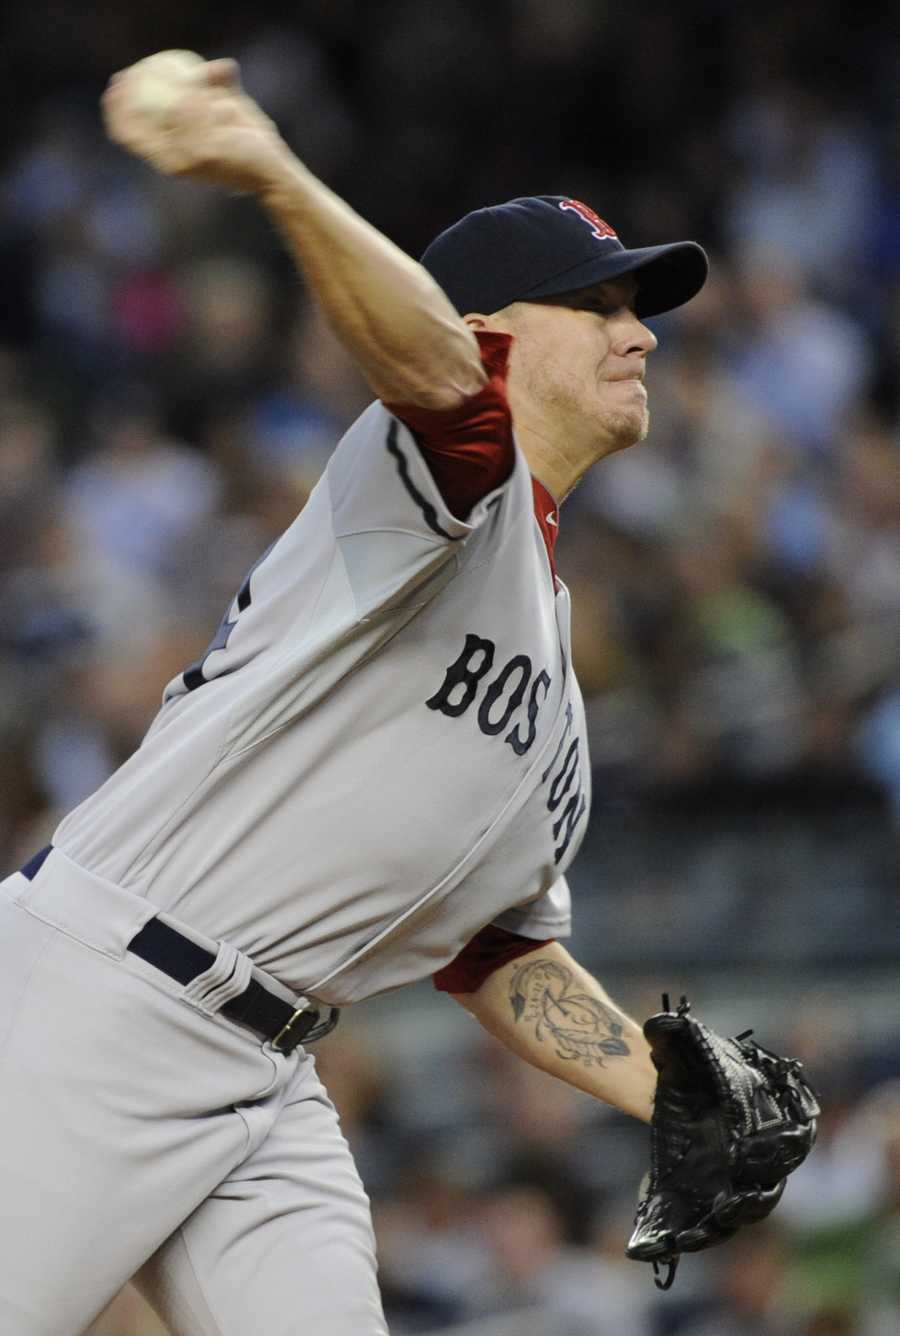 Peavy made his Major League Debut on June 22, 2002 against the New York Yankees.